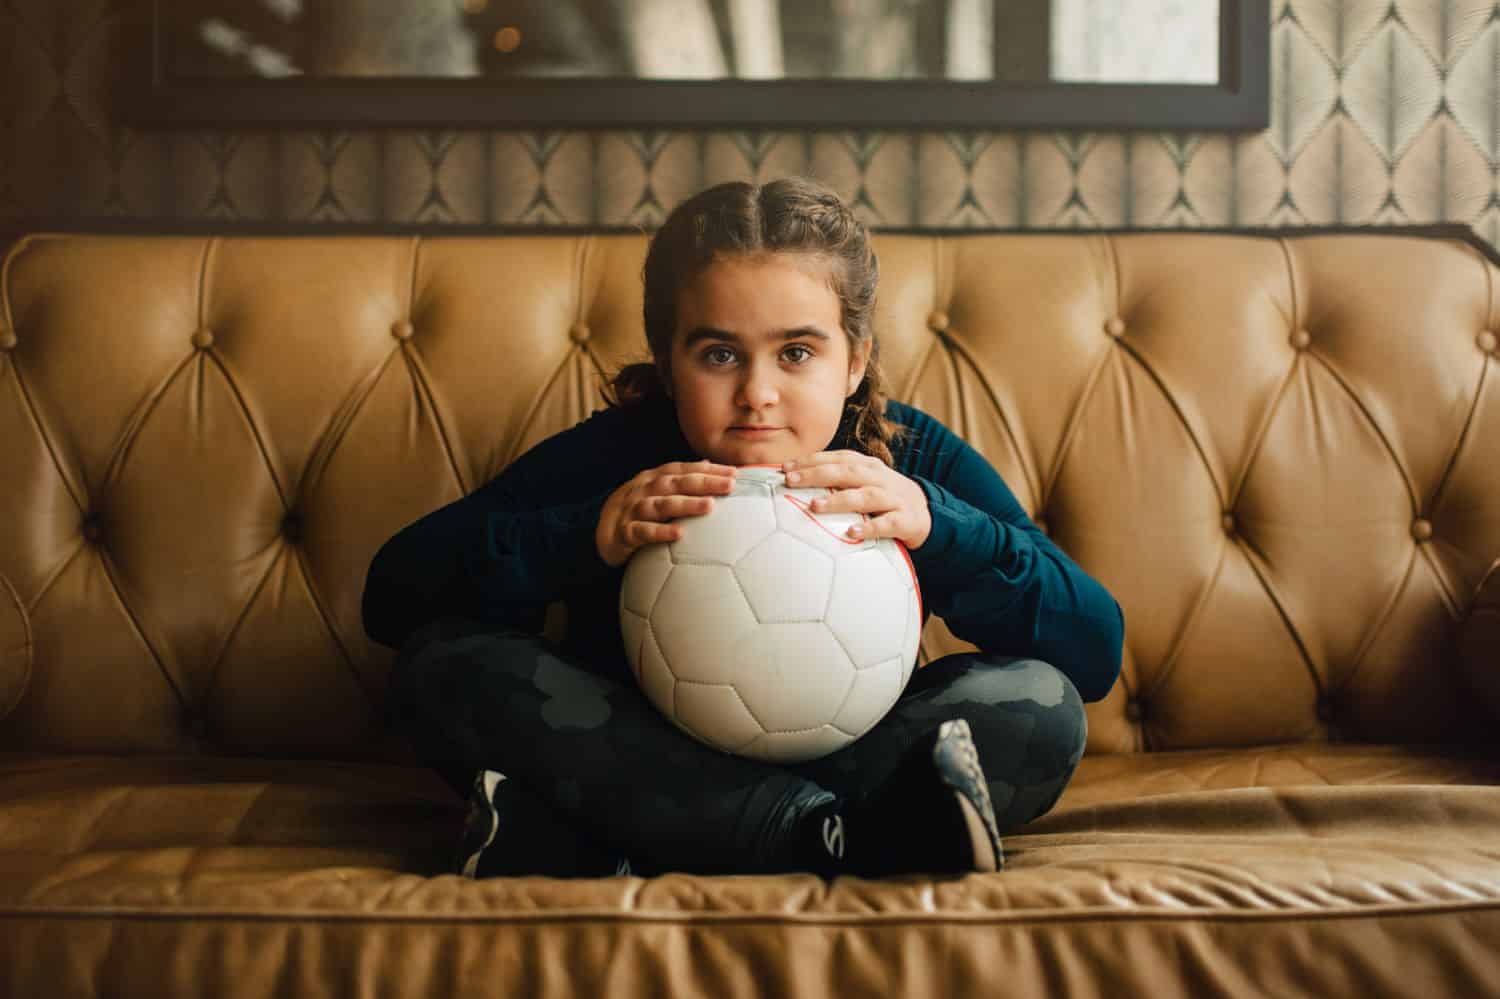 A little girl with French braids sits cross-legged on a leather sofa holding a soccer ball in her lap. By Kate T. Parker for Strong is the New Pretty